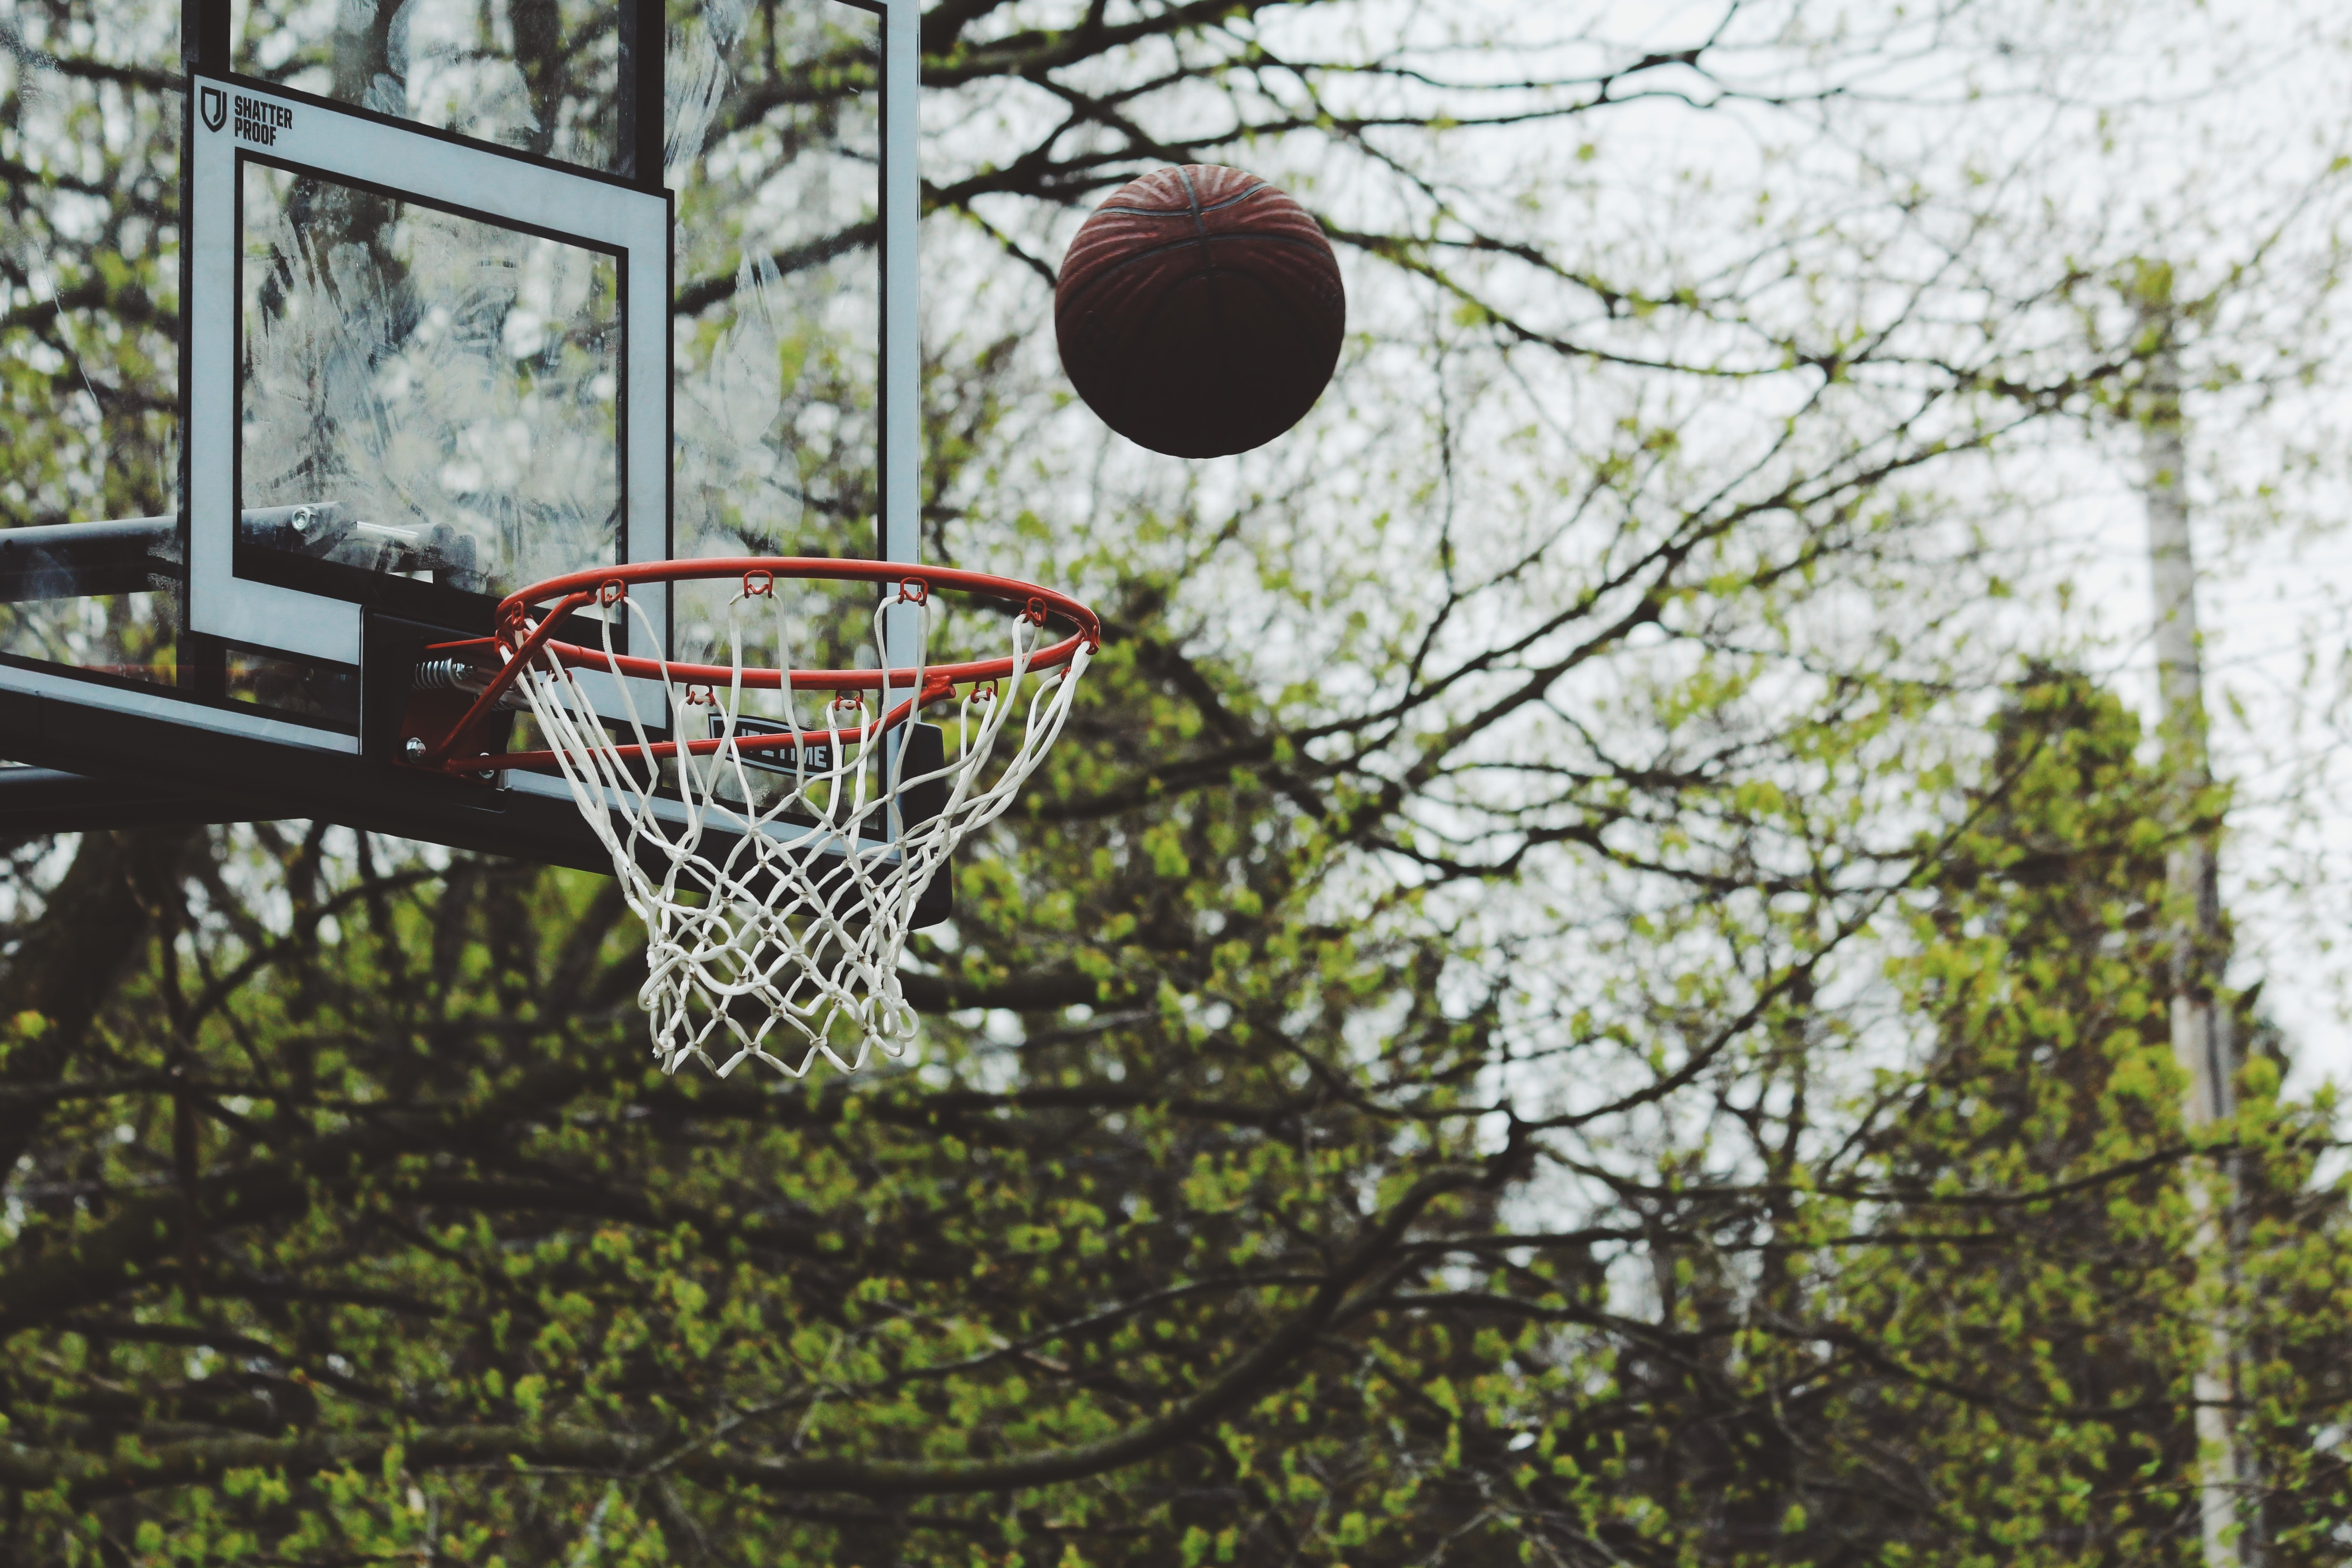 A basketball soaring towards the hoop on an outdoors court